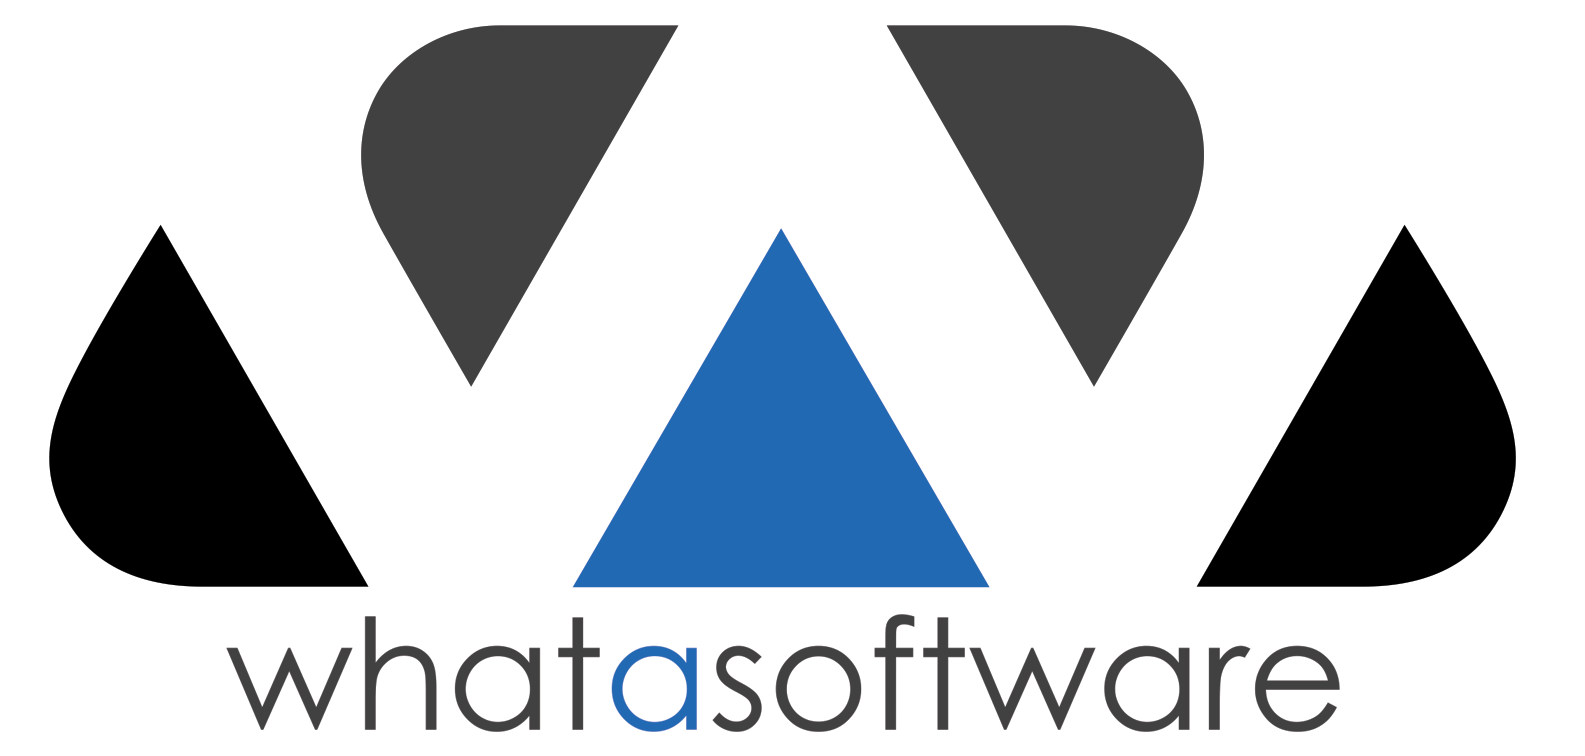 WhataSoftware logo